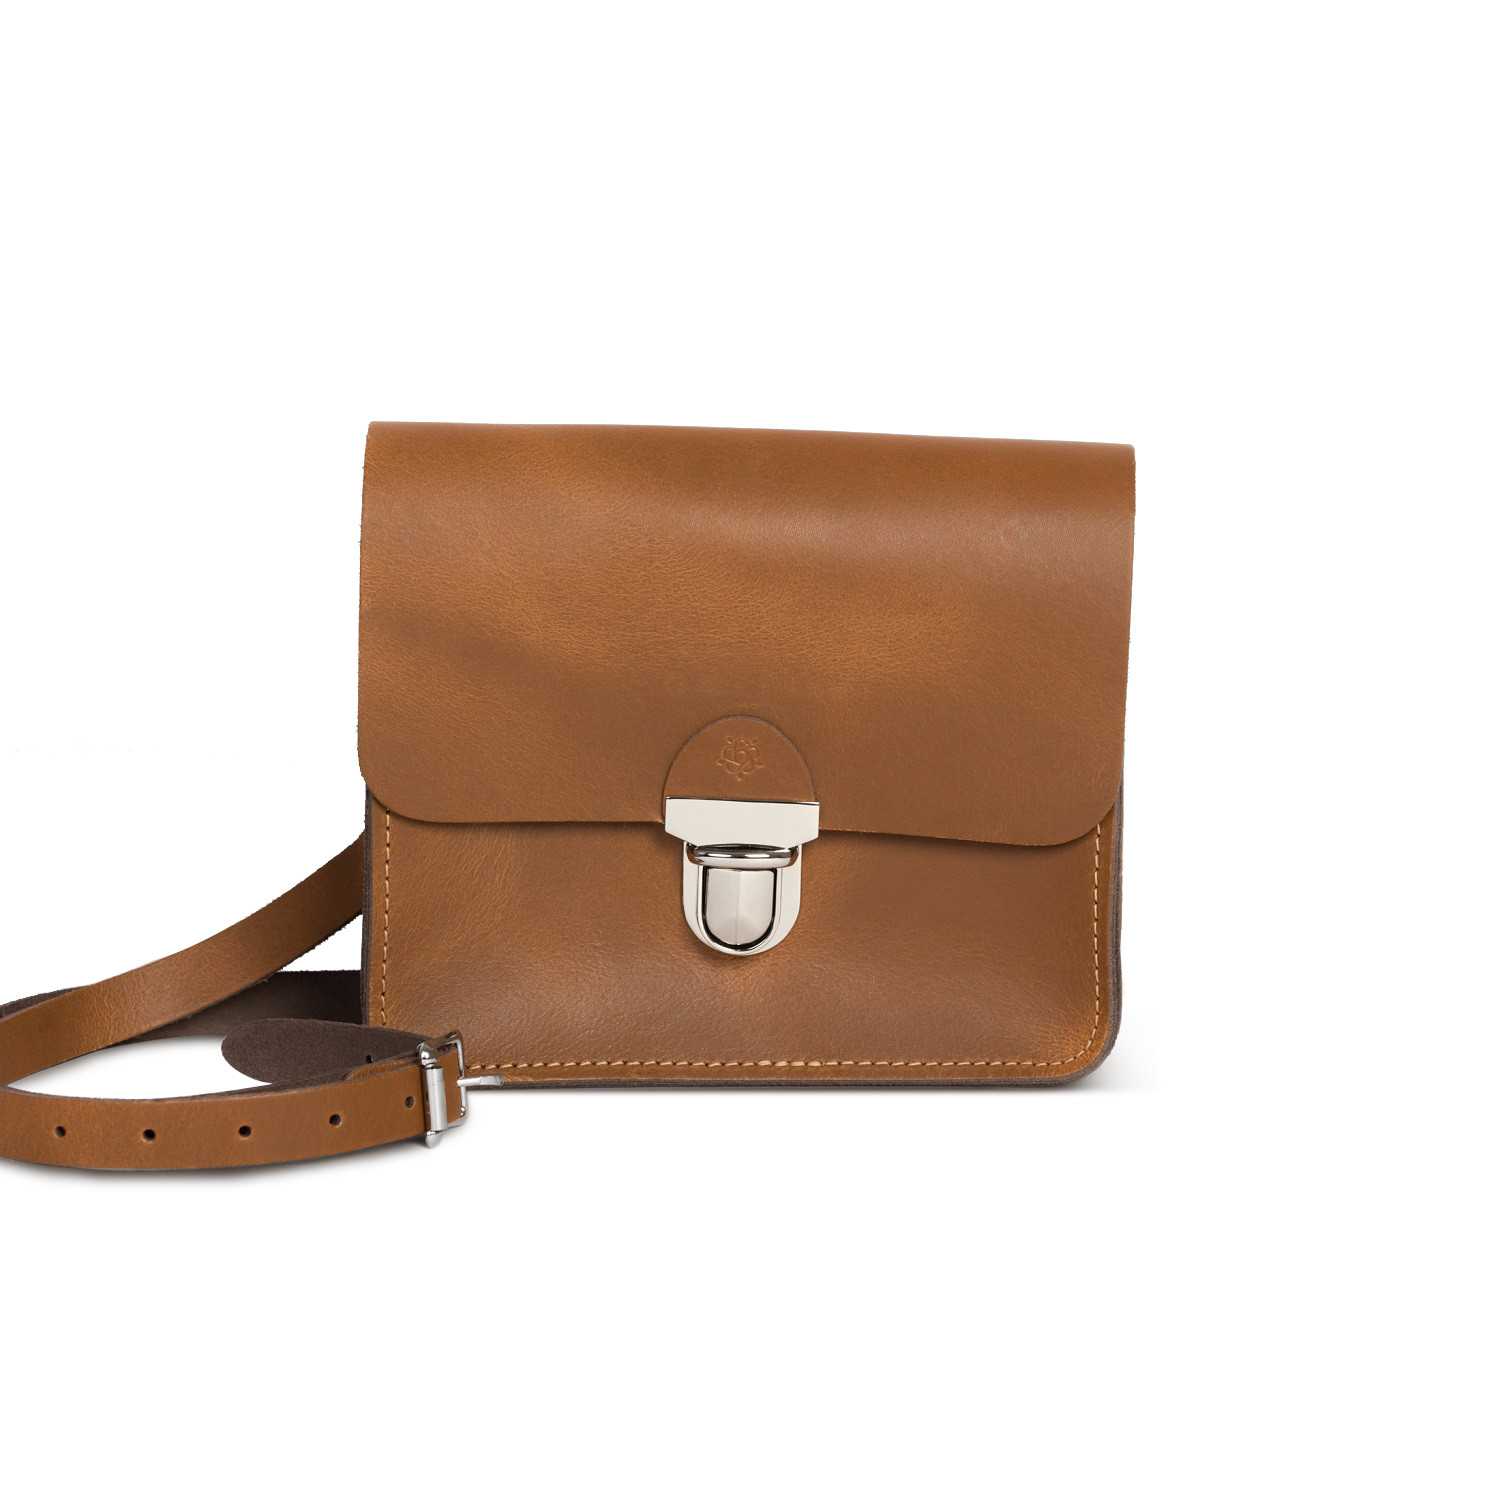 Sofia Premium Leather Crossbody Bag in Vintage Tan